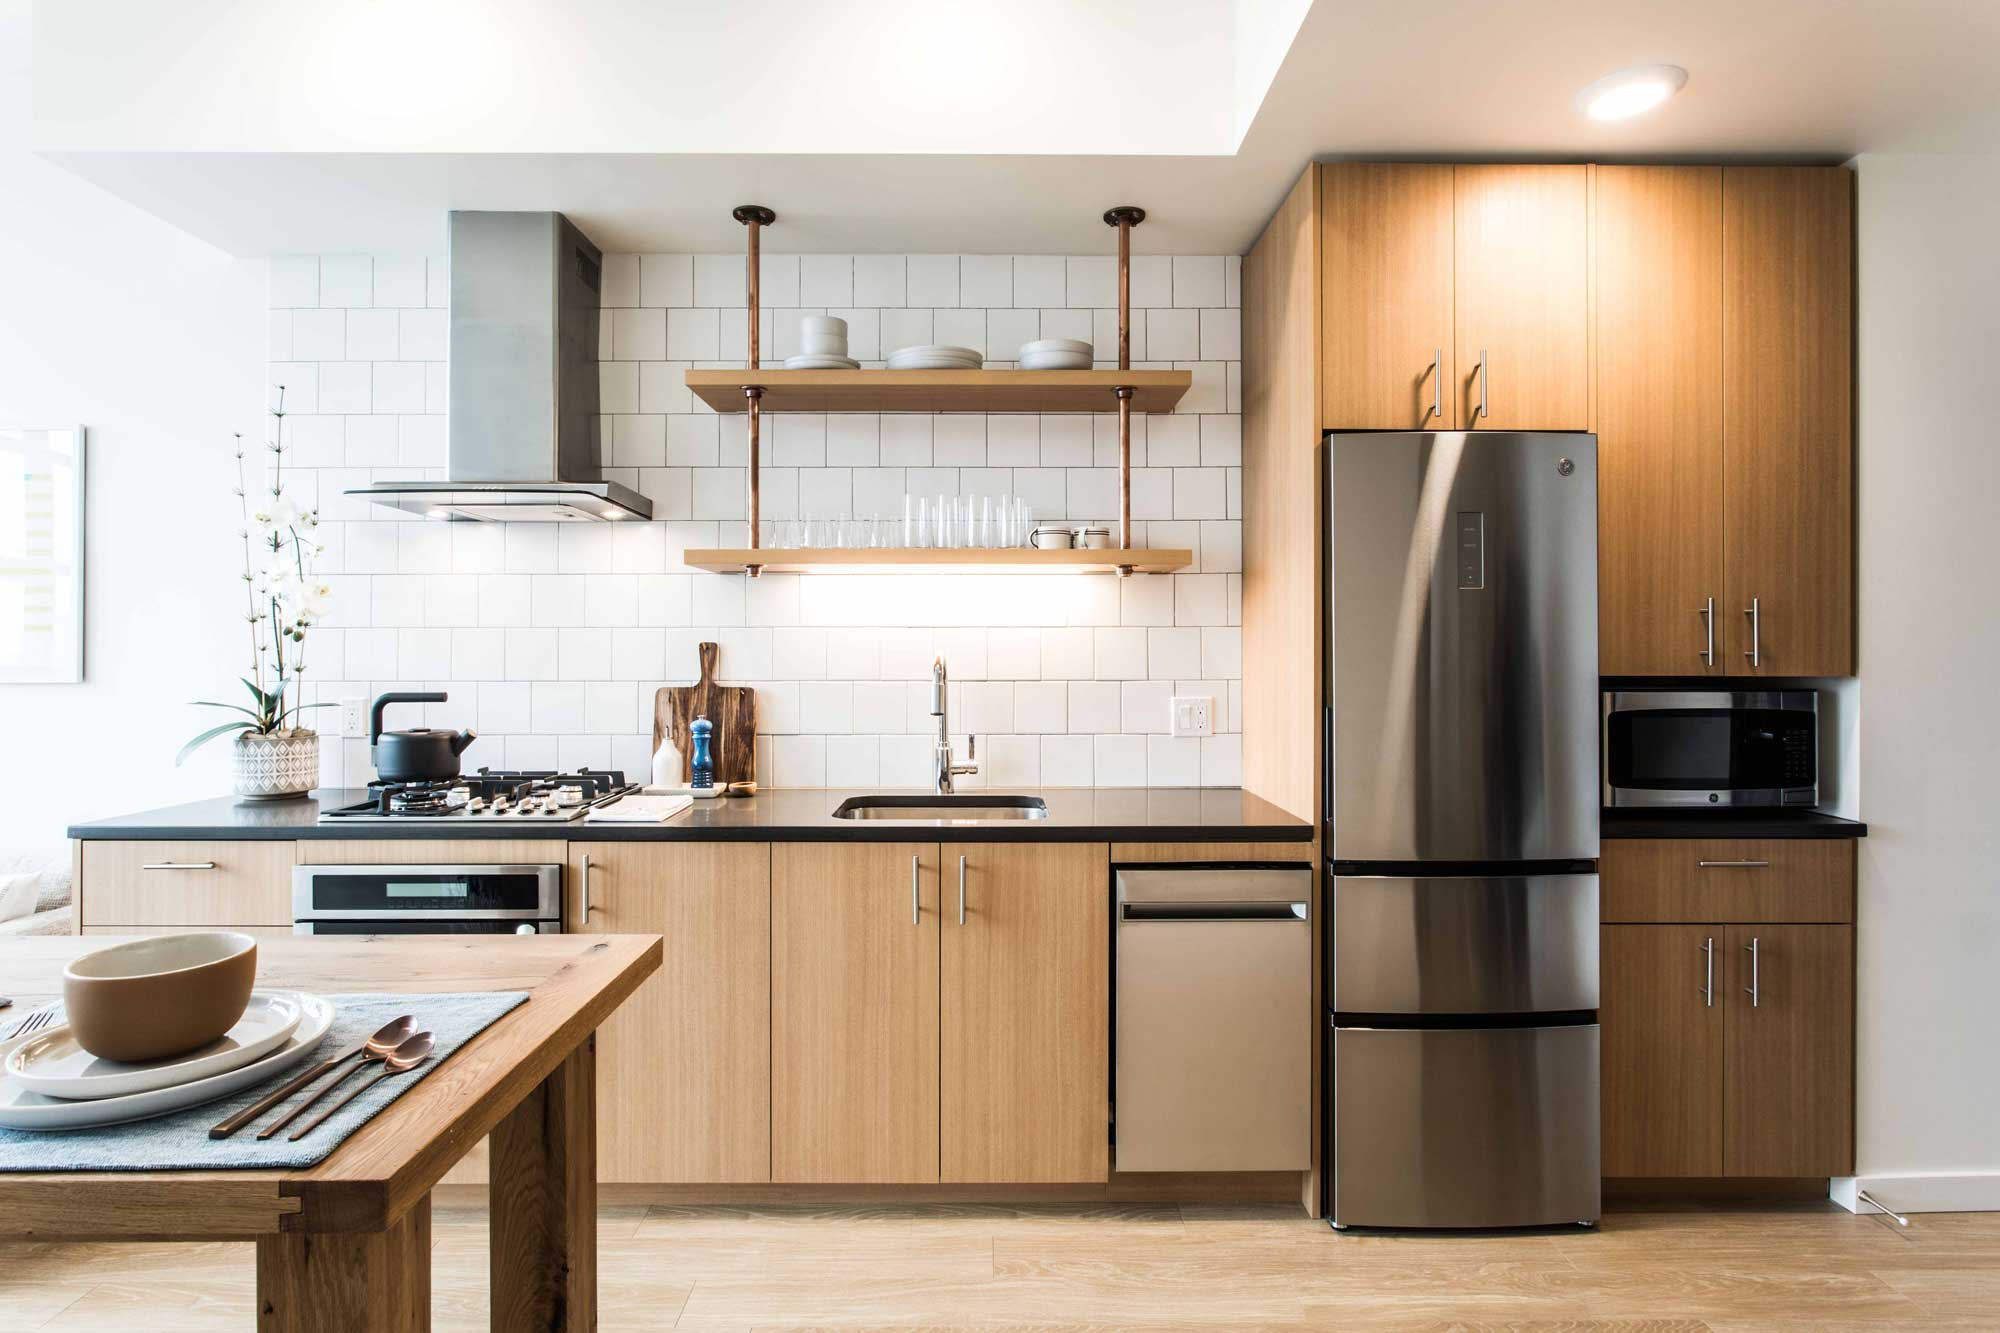 Contemporary kitchen at 230 Ash luxury apartments in downtown Portland